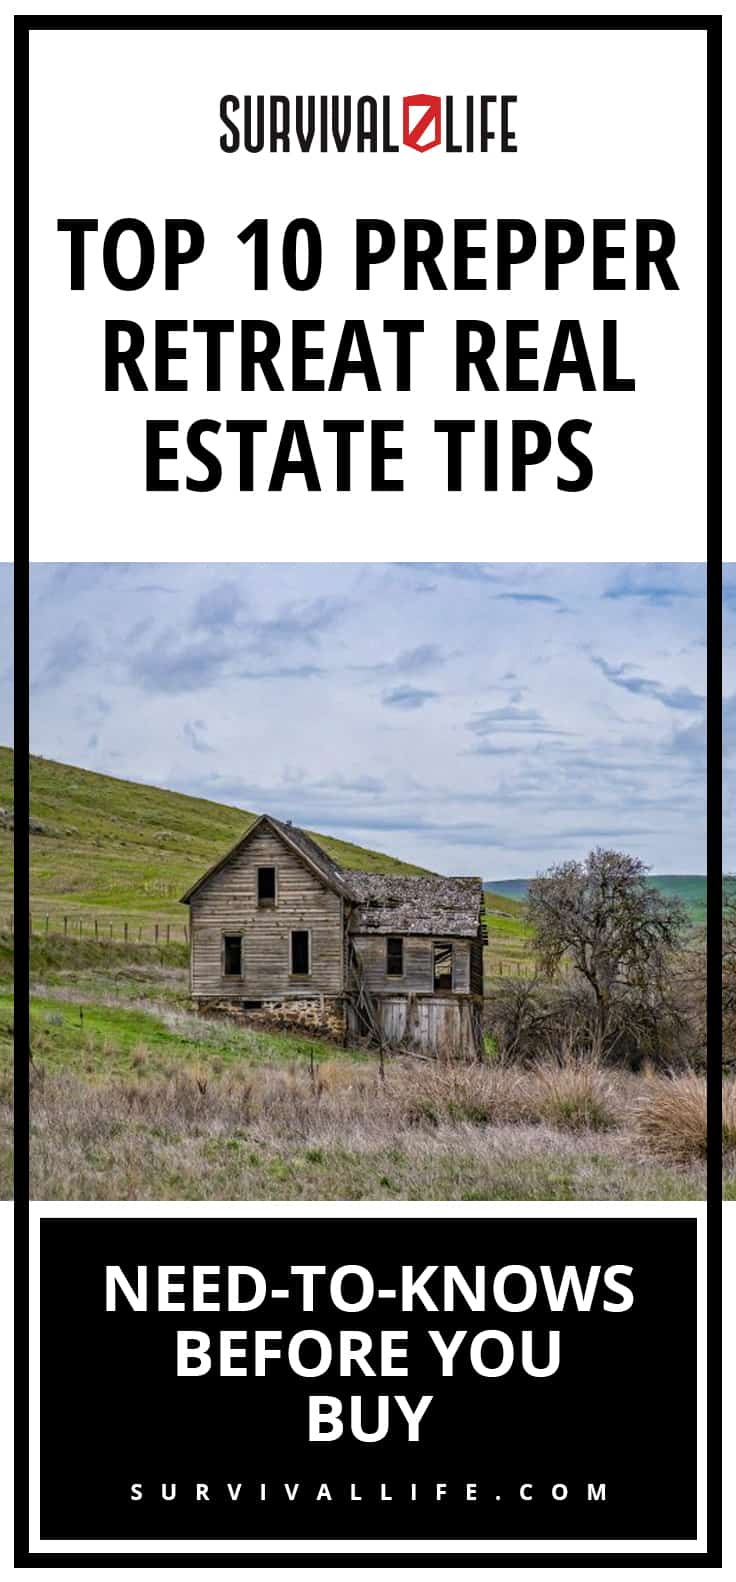 Top 10 Prepper Retreat Real Estate Tips | Need-To-Knows Before You Buy